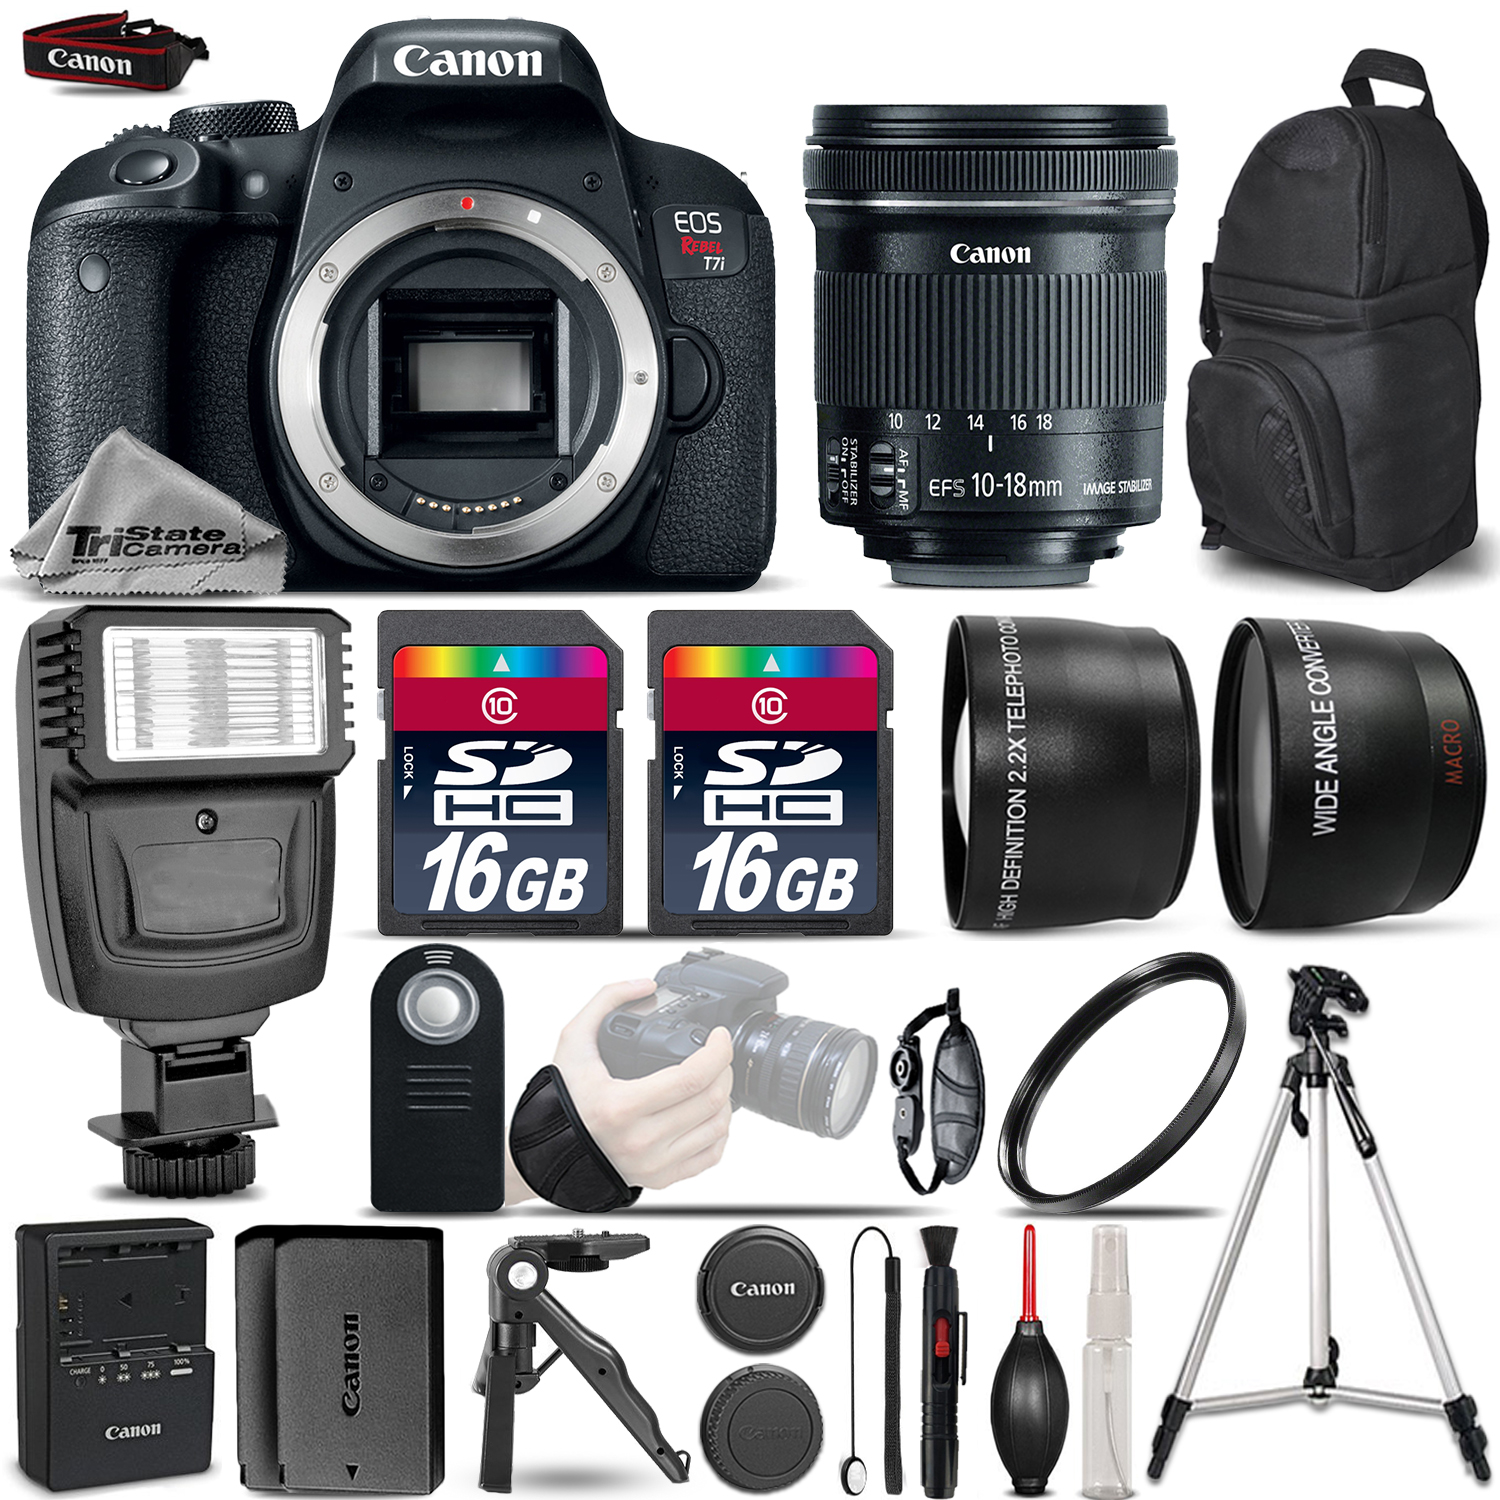 EOS Rebel T7i DSLR Camera + 10-18mm IS STM + Flash + 32GB + Extra Battery *FREE SHIPPING*